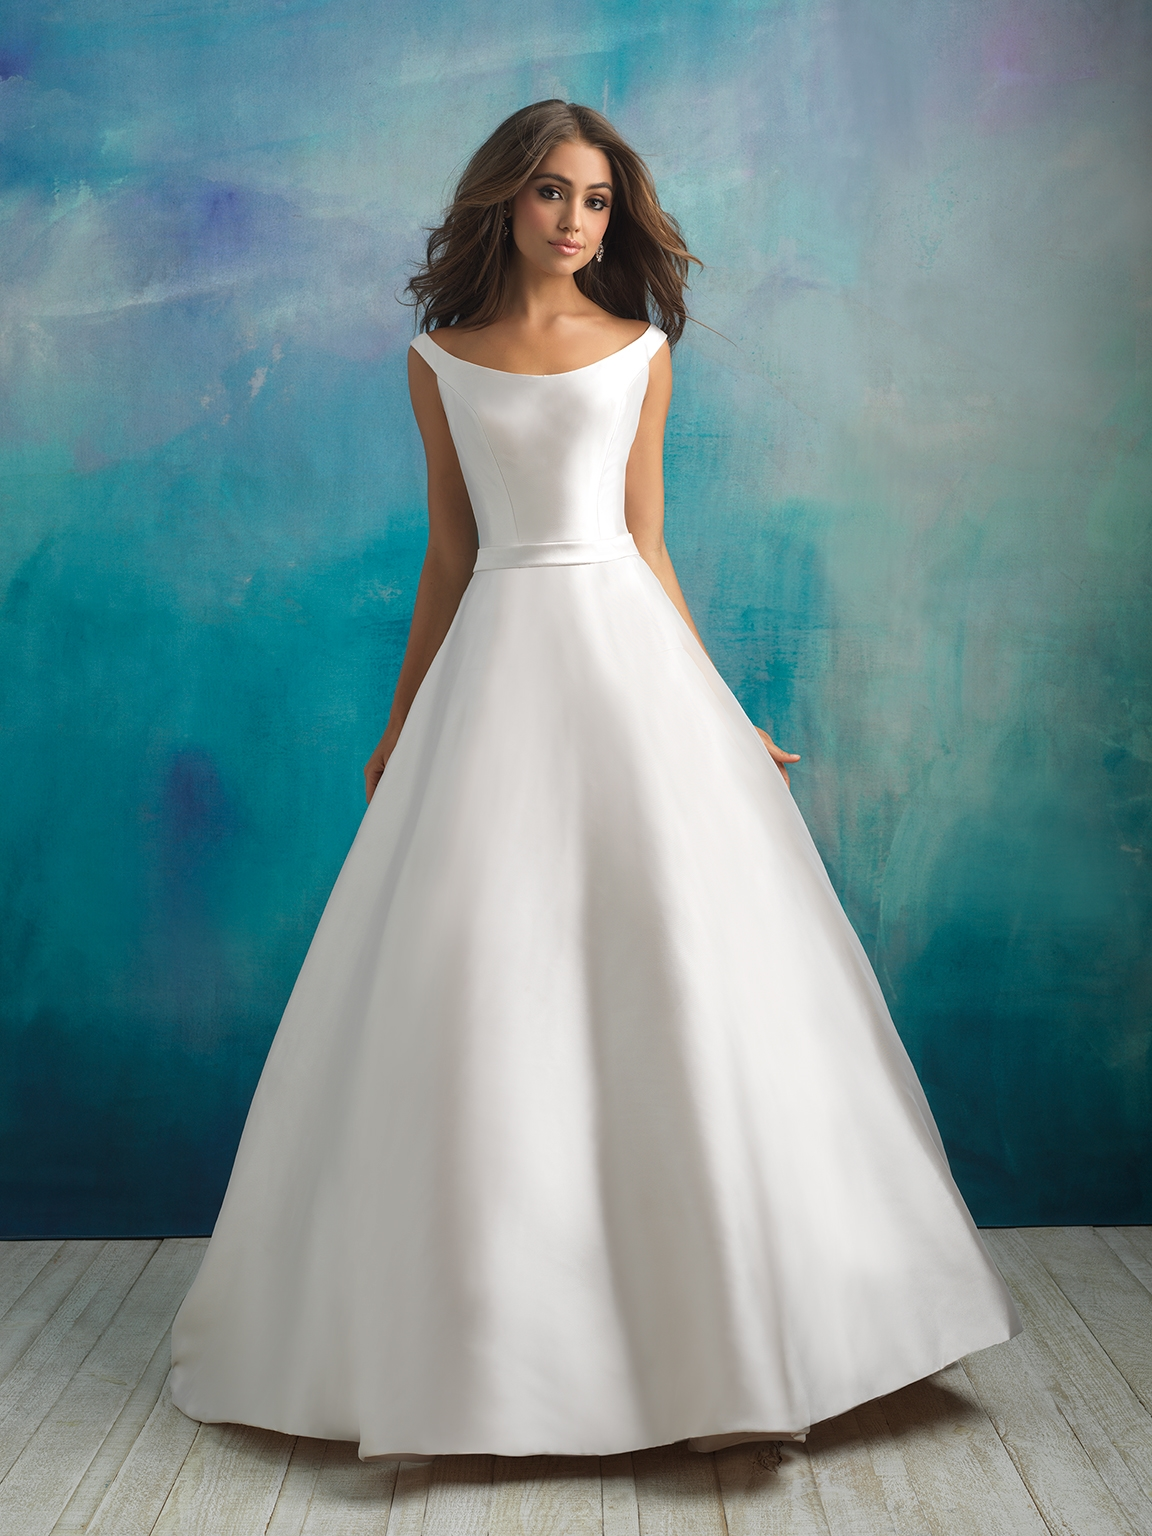 Classic Ball Gown Wedding Dress | Kleinfeld Bridal